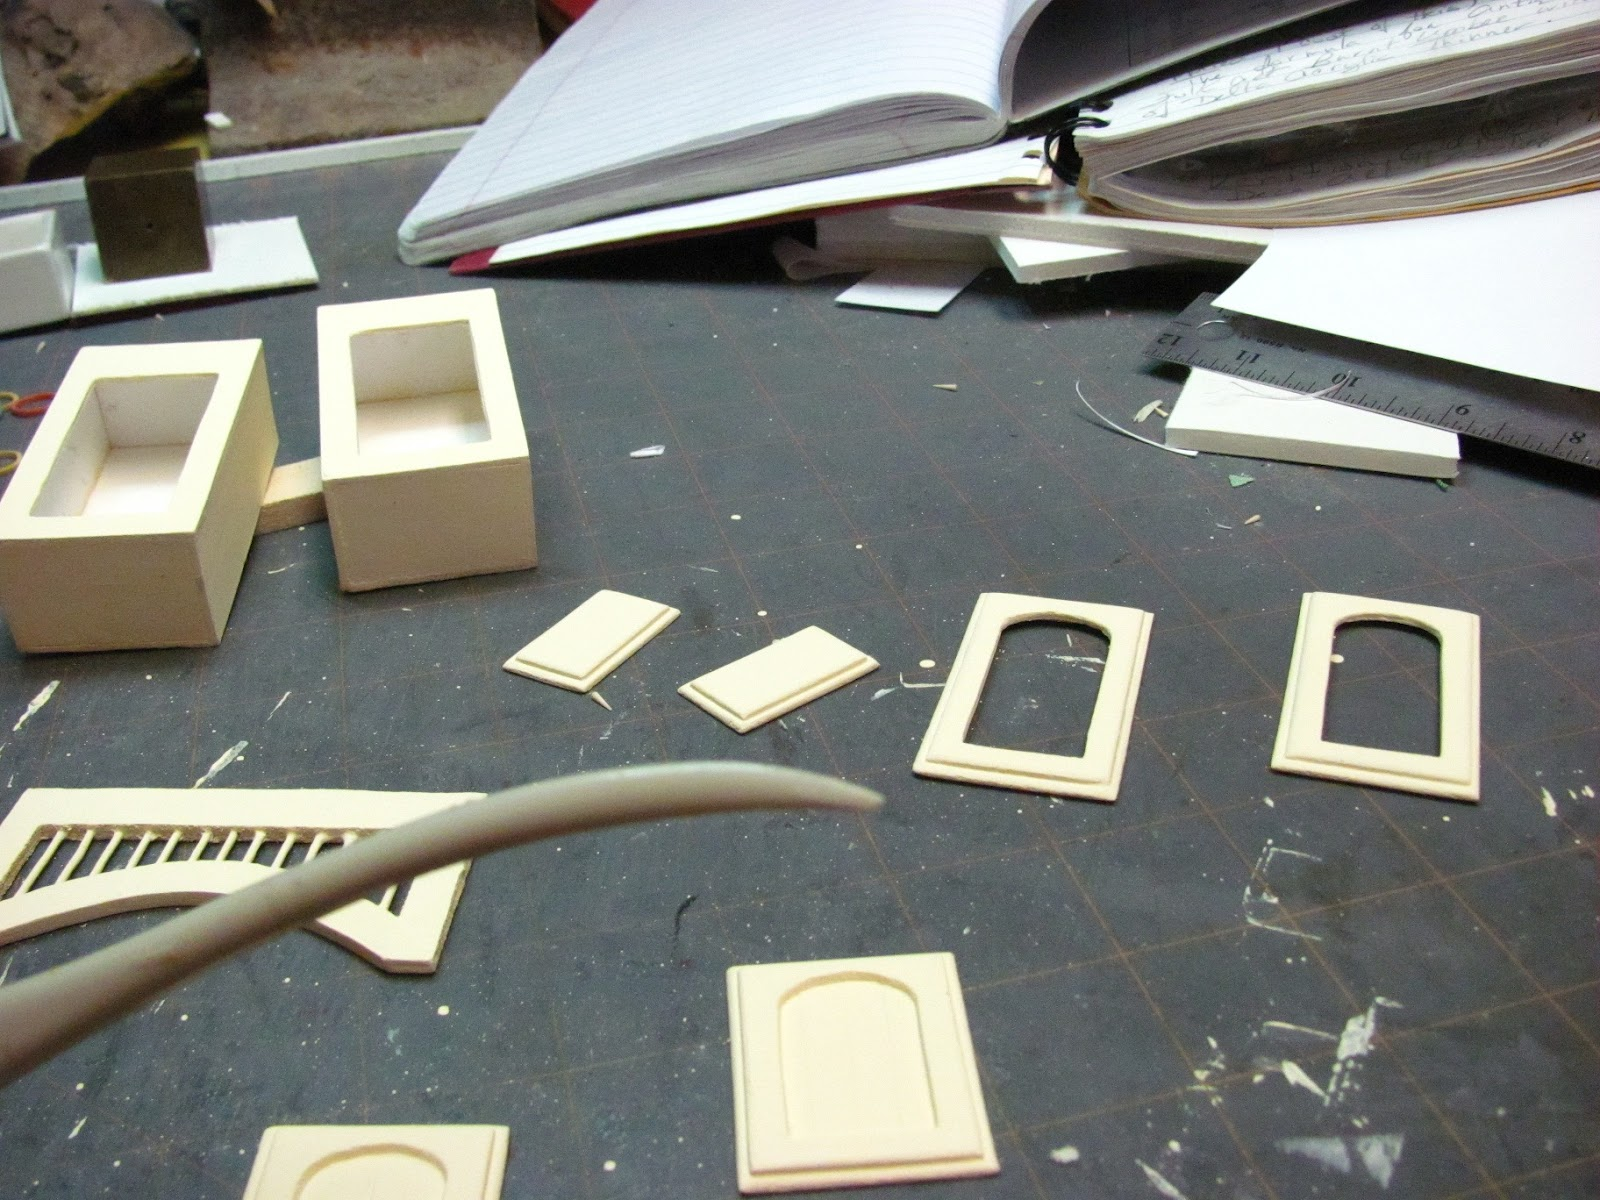 Dollhouse Miniature Furniture Tutorials 1 Inch Minis Kitchen Cabinets How To Make Contemporary Kitchen Cabinets From Mat Board Finishing The Cabinets